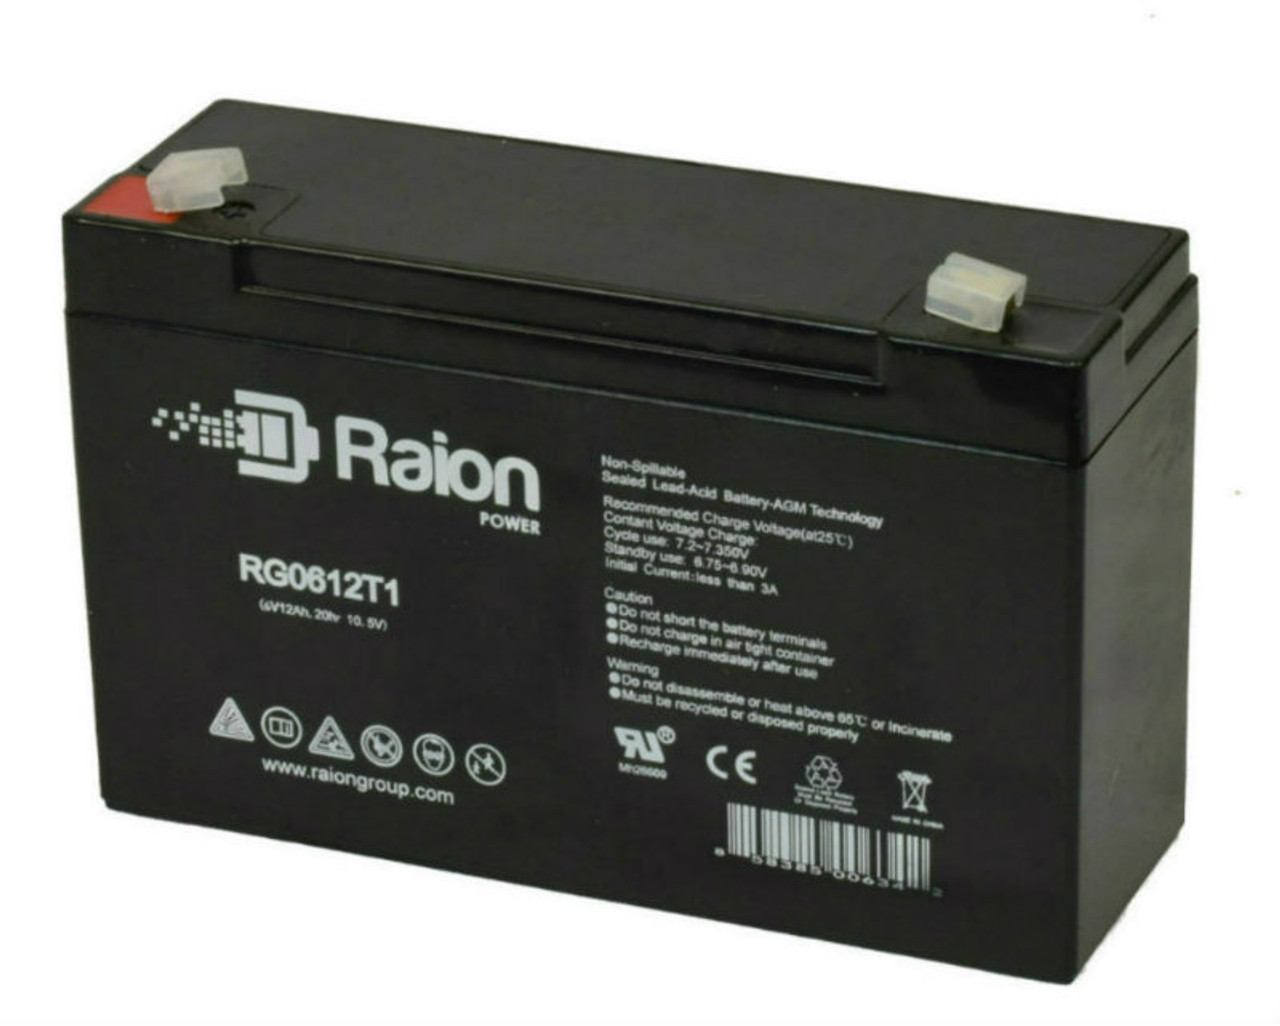 Raion Power RG06120T1 Replacement Battery Pack for Prescolite ERB0610 emergency light